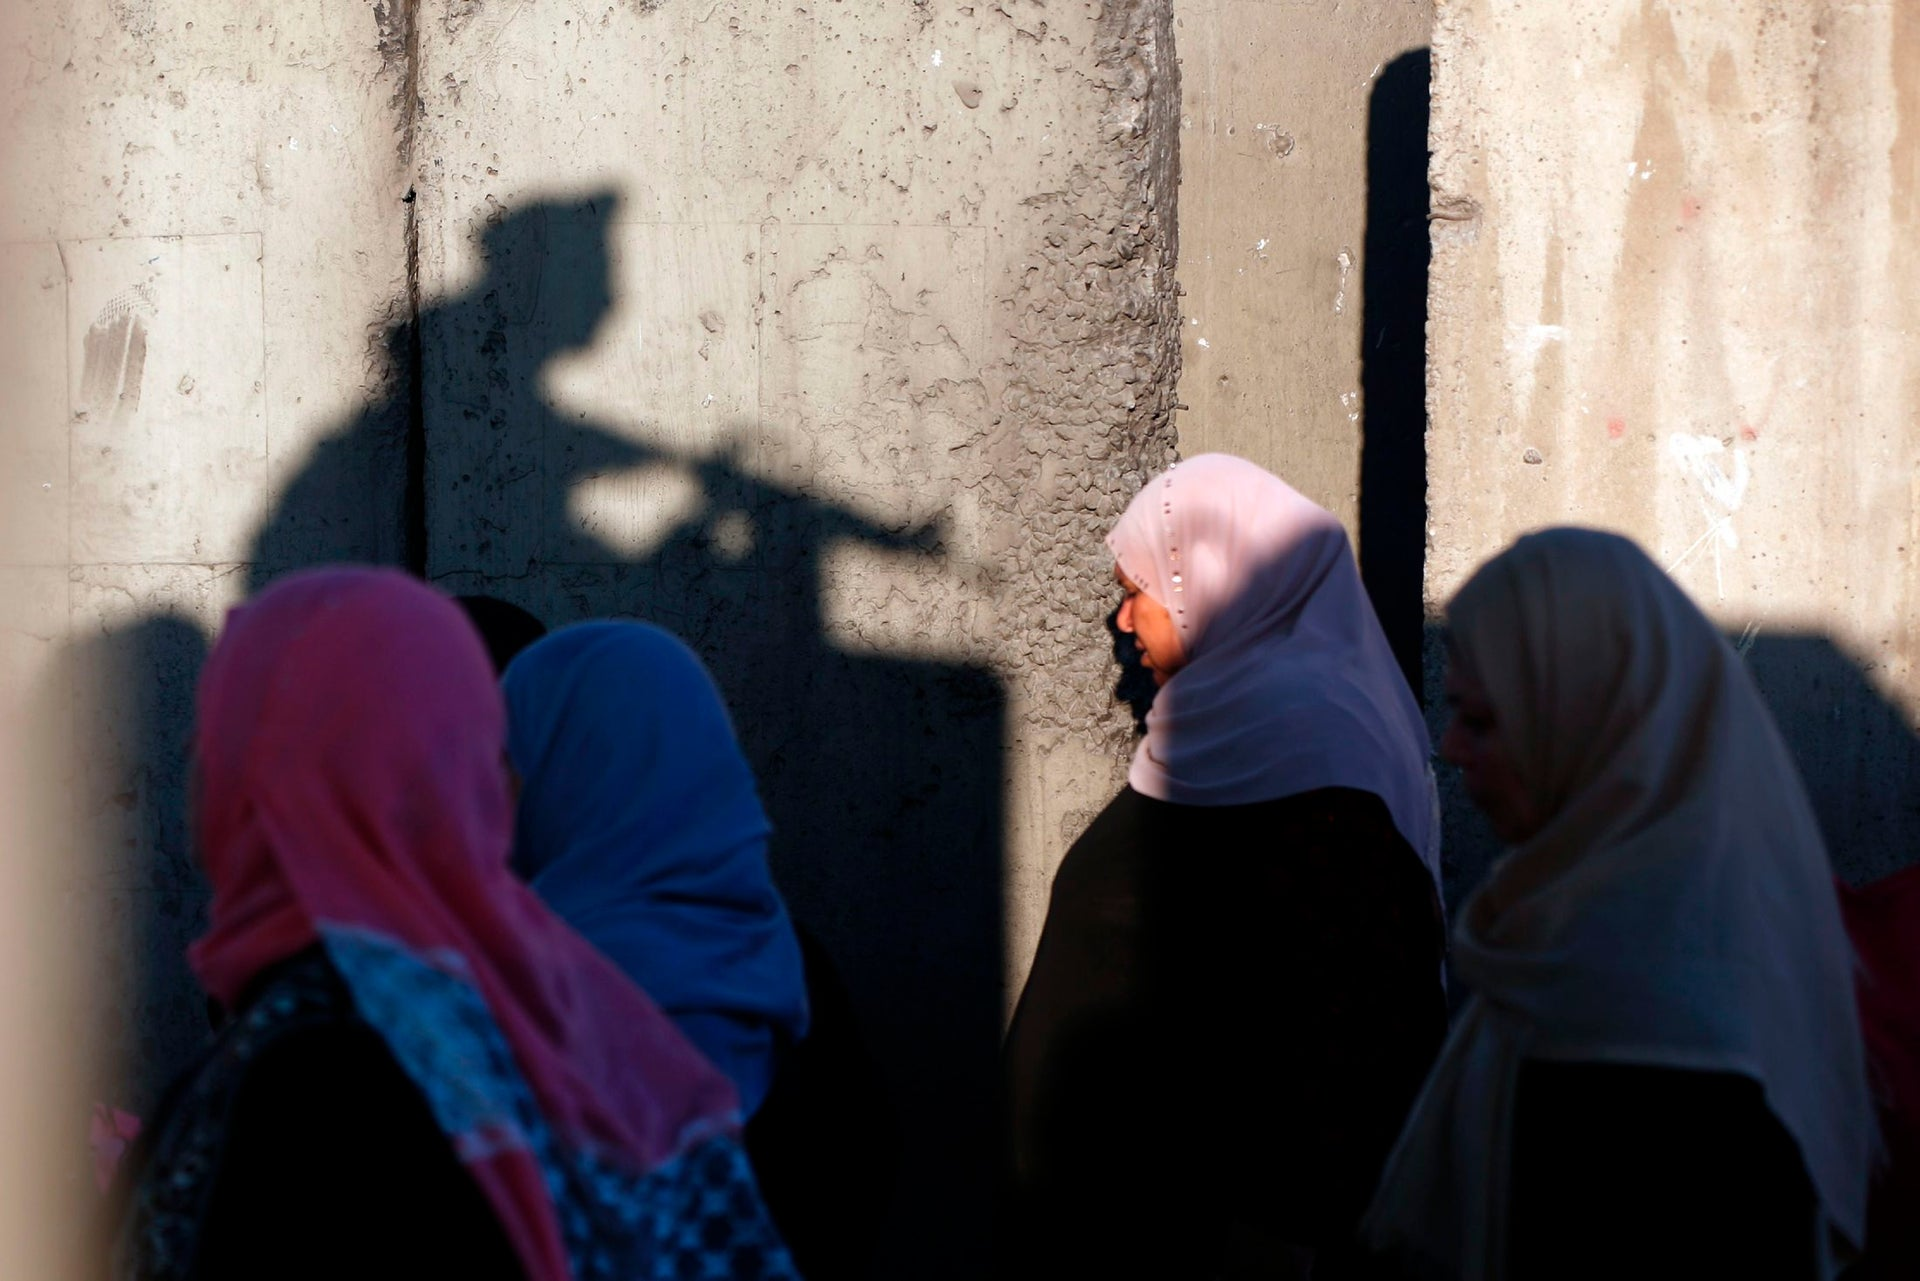 Palestinians wait to cross the Qalandiyah checkpoint between the West Bank city of Ramallah and Jerusalem.